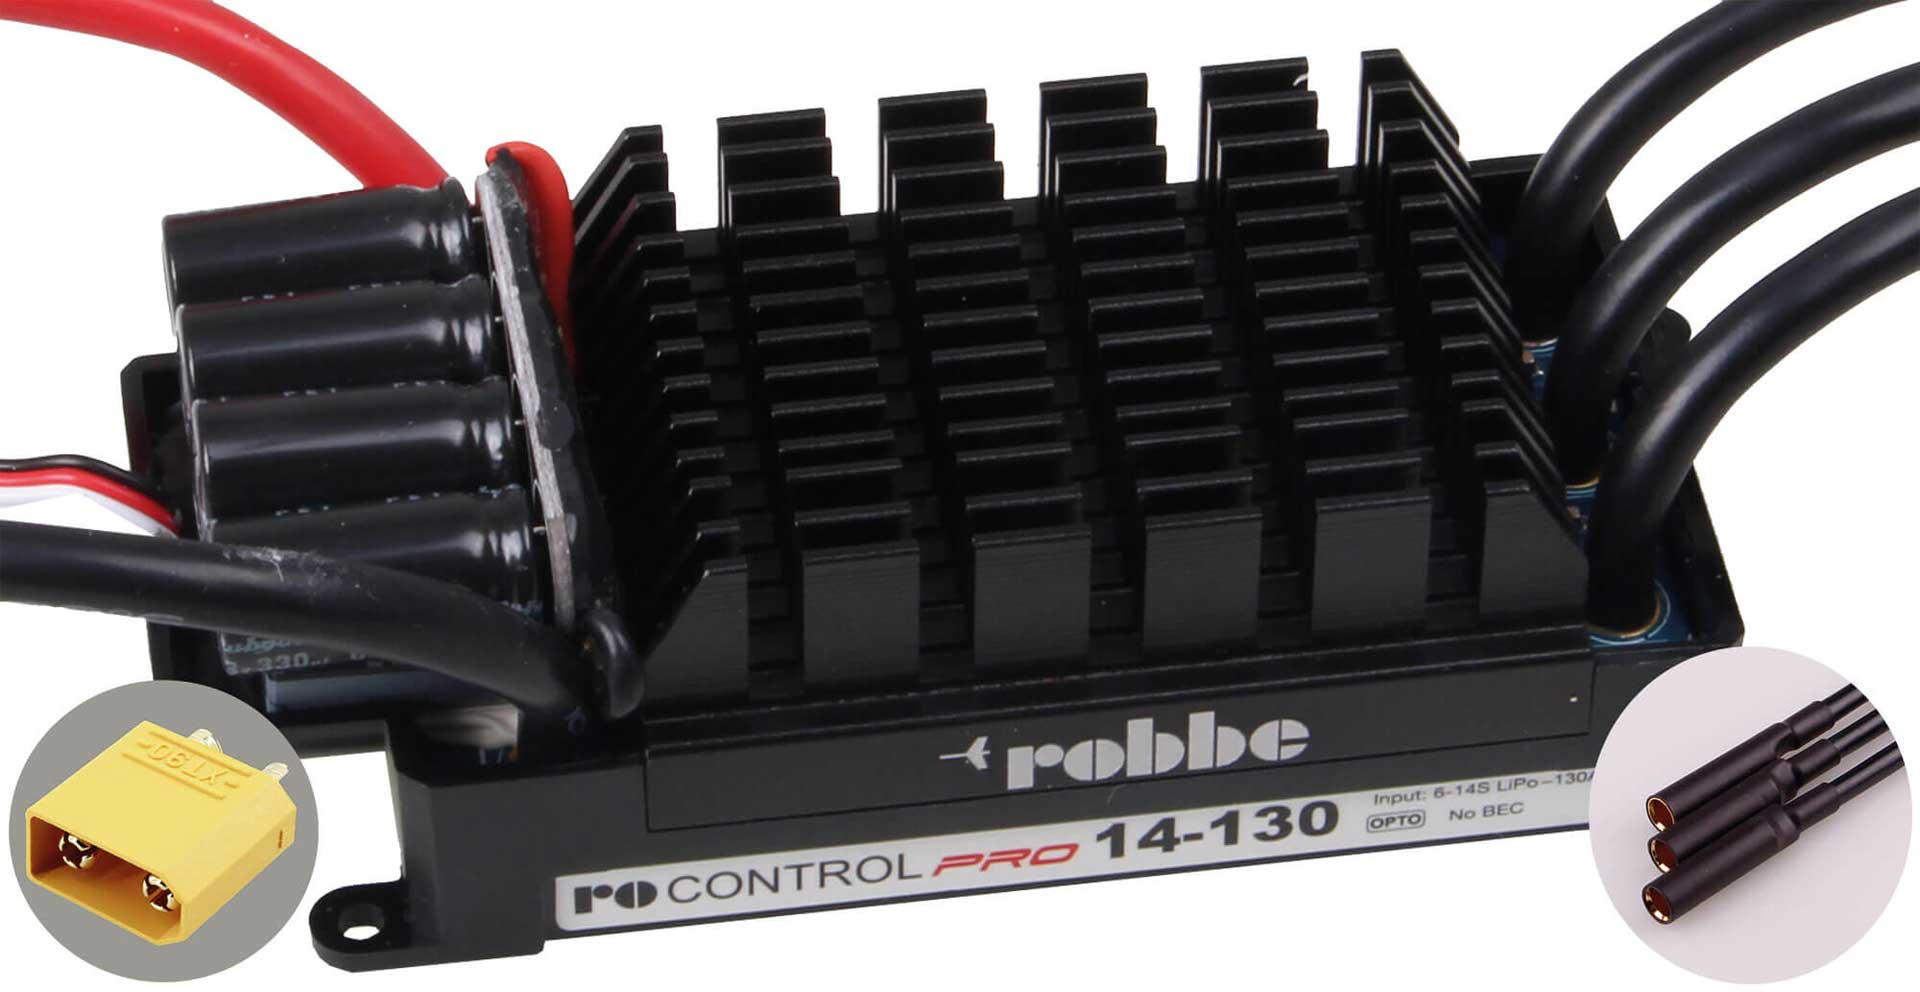 ROBBE RO-CONTROL PRO 14-130 6-14S -130(160)A OPTO